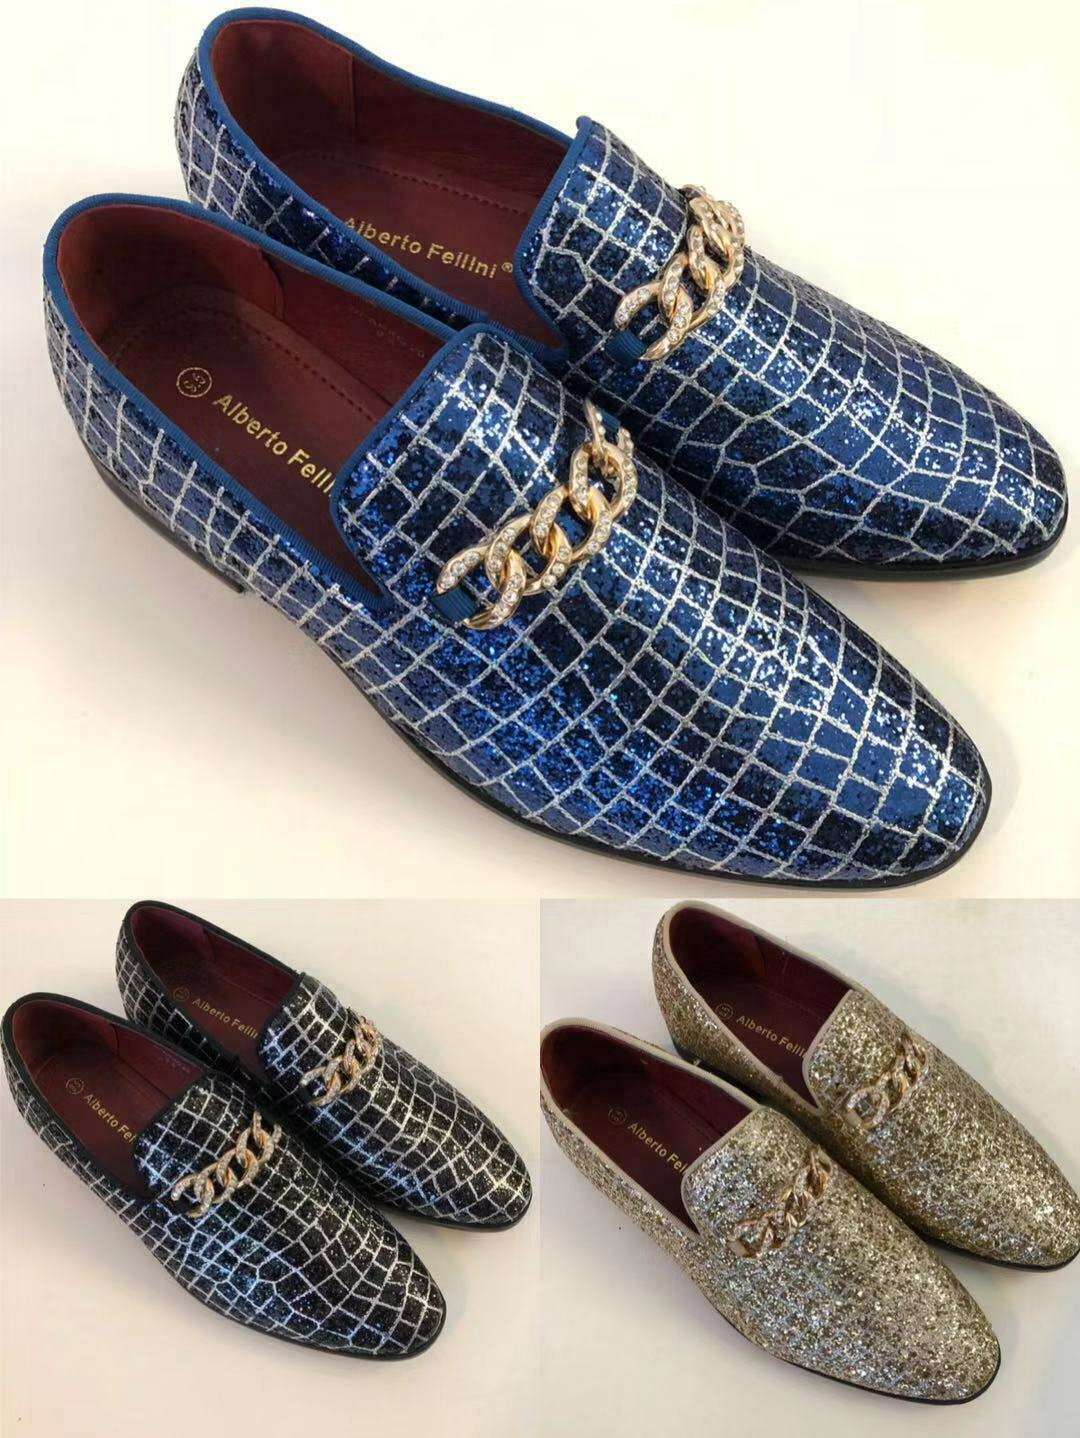 Men Vintage Glitter Stage Dress Shoes Tuxedos Loafers Slip On Classic SpK4.5.12  1